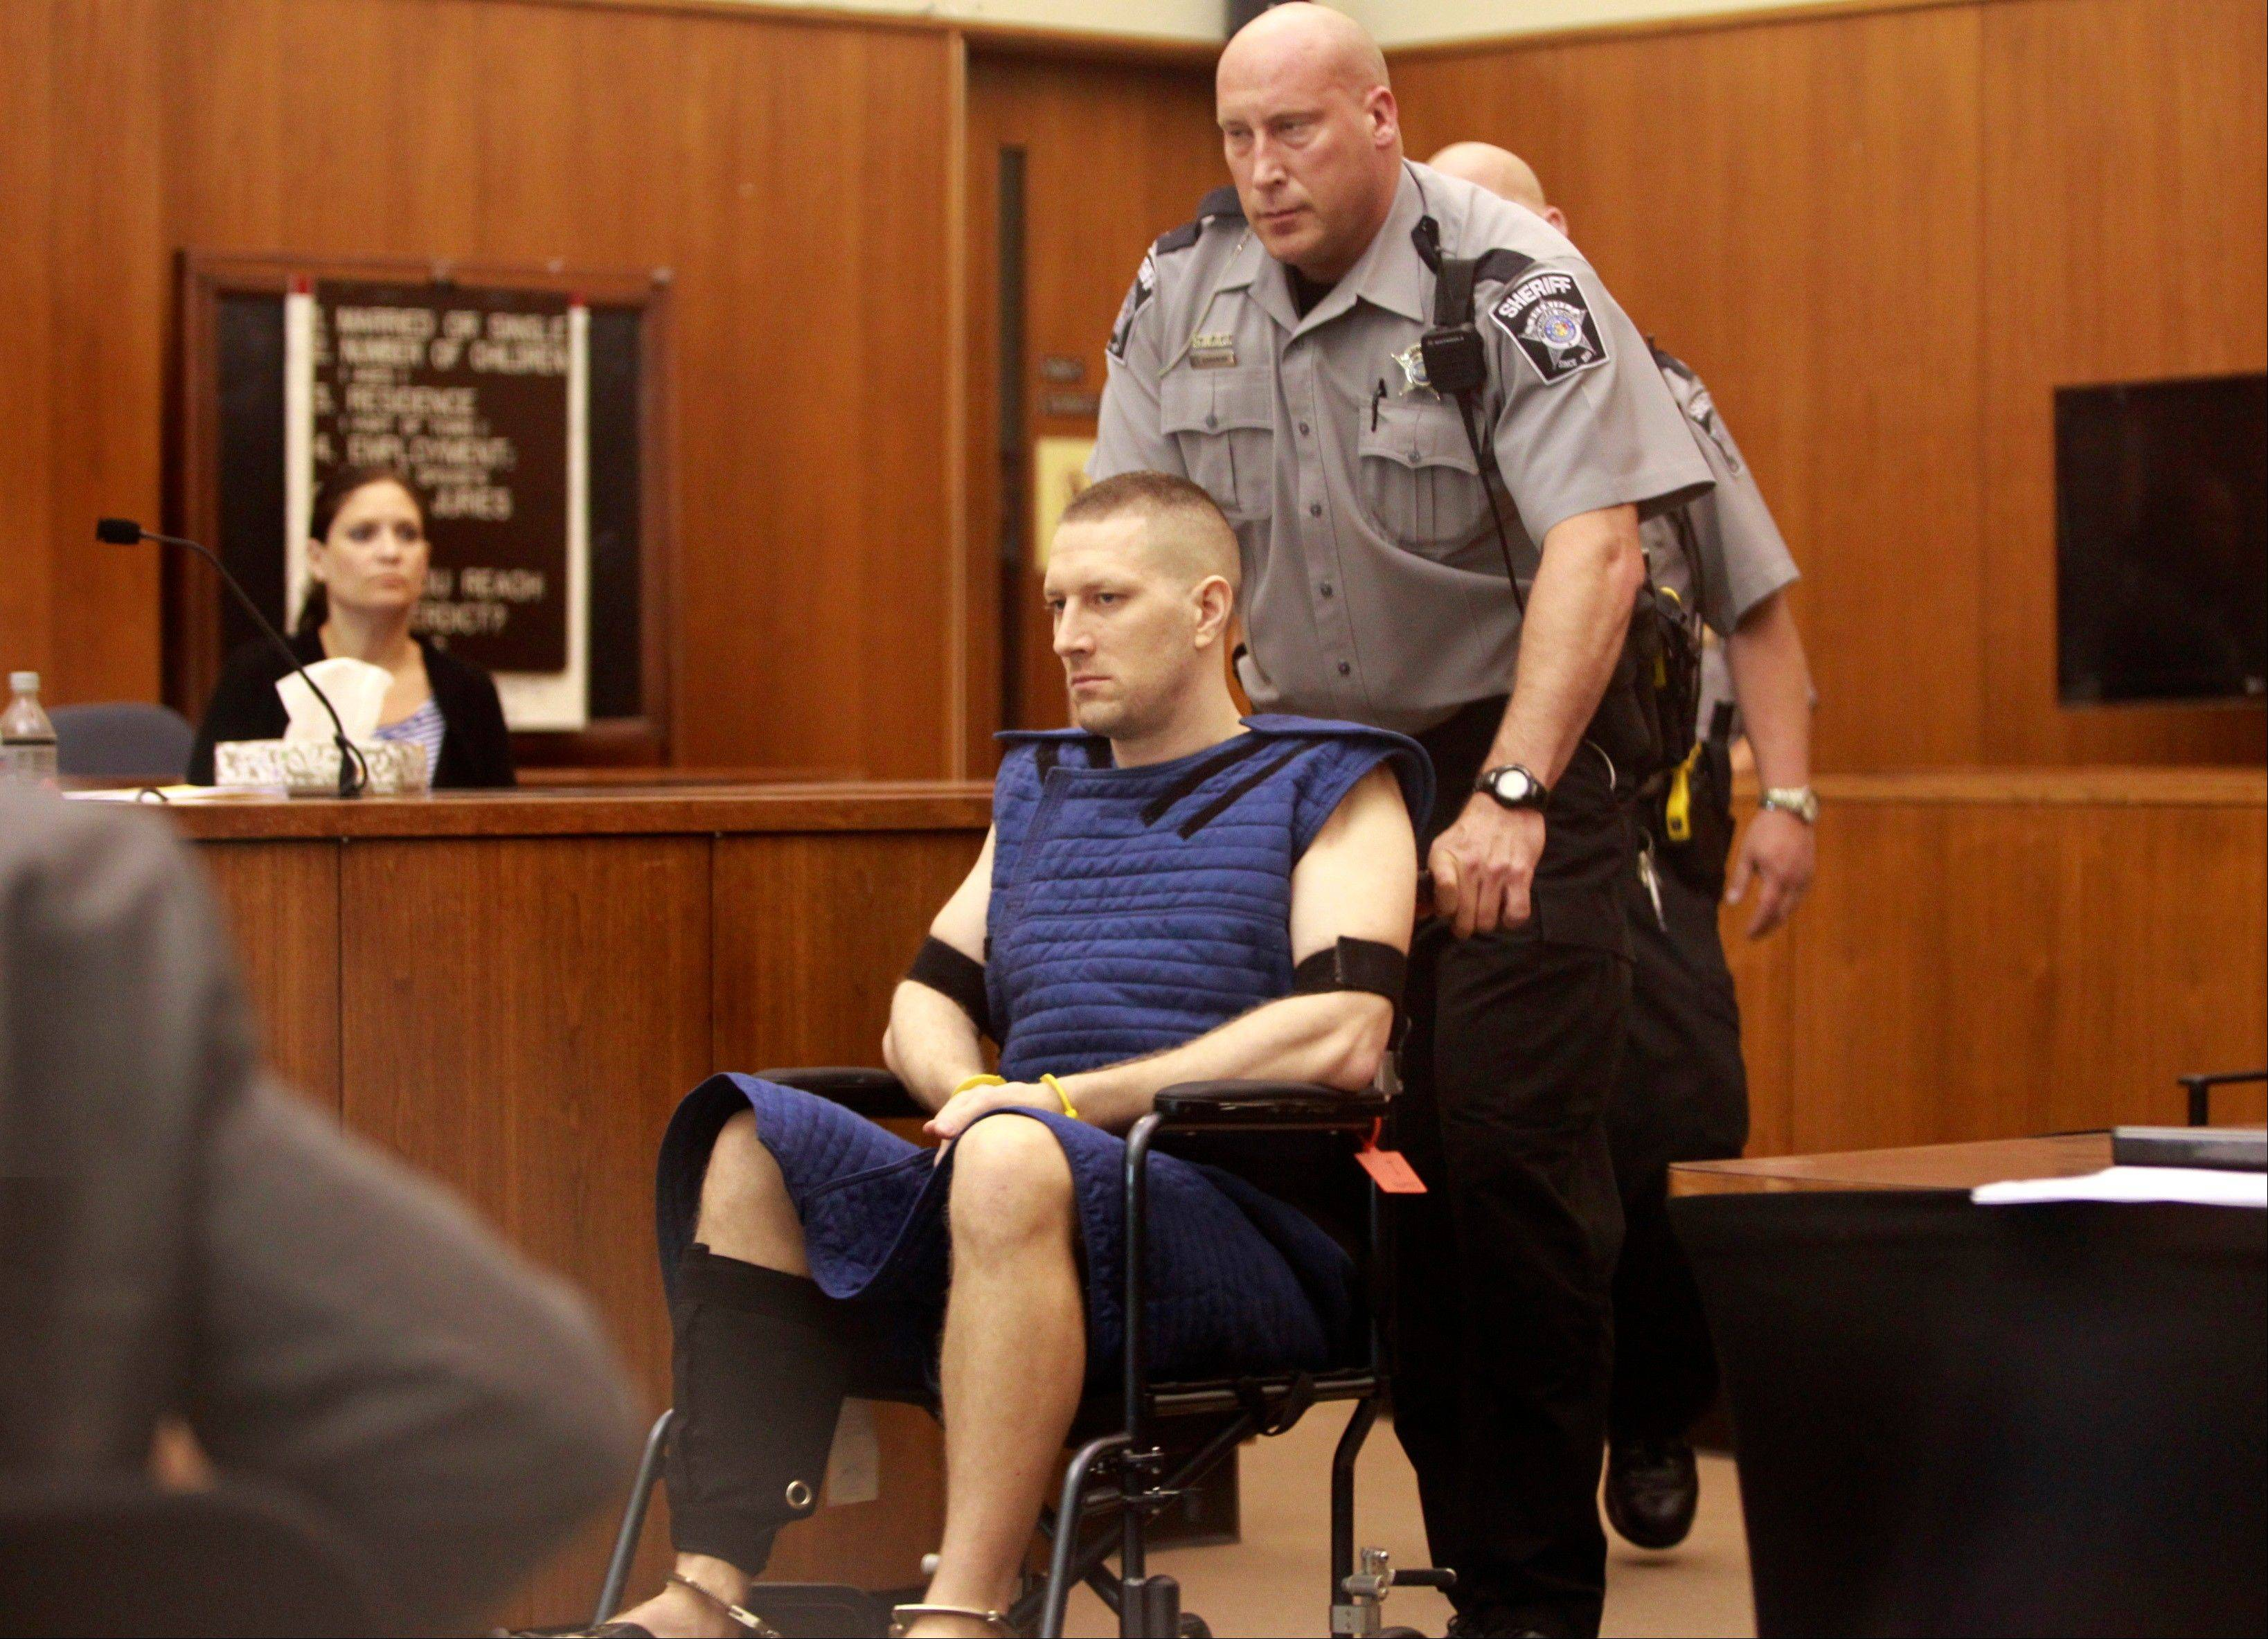 Benjamin G. Sebena is led into the courtroom on Friday in Milwaukee.